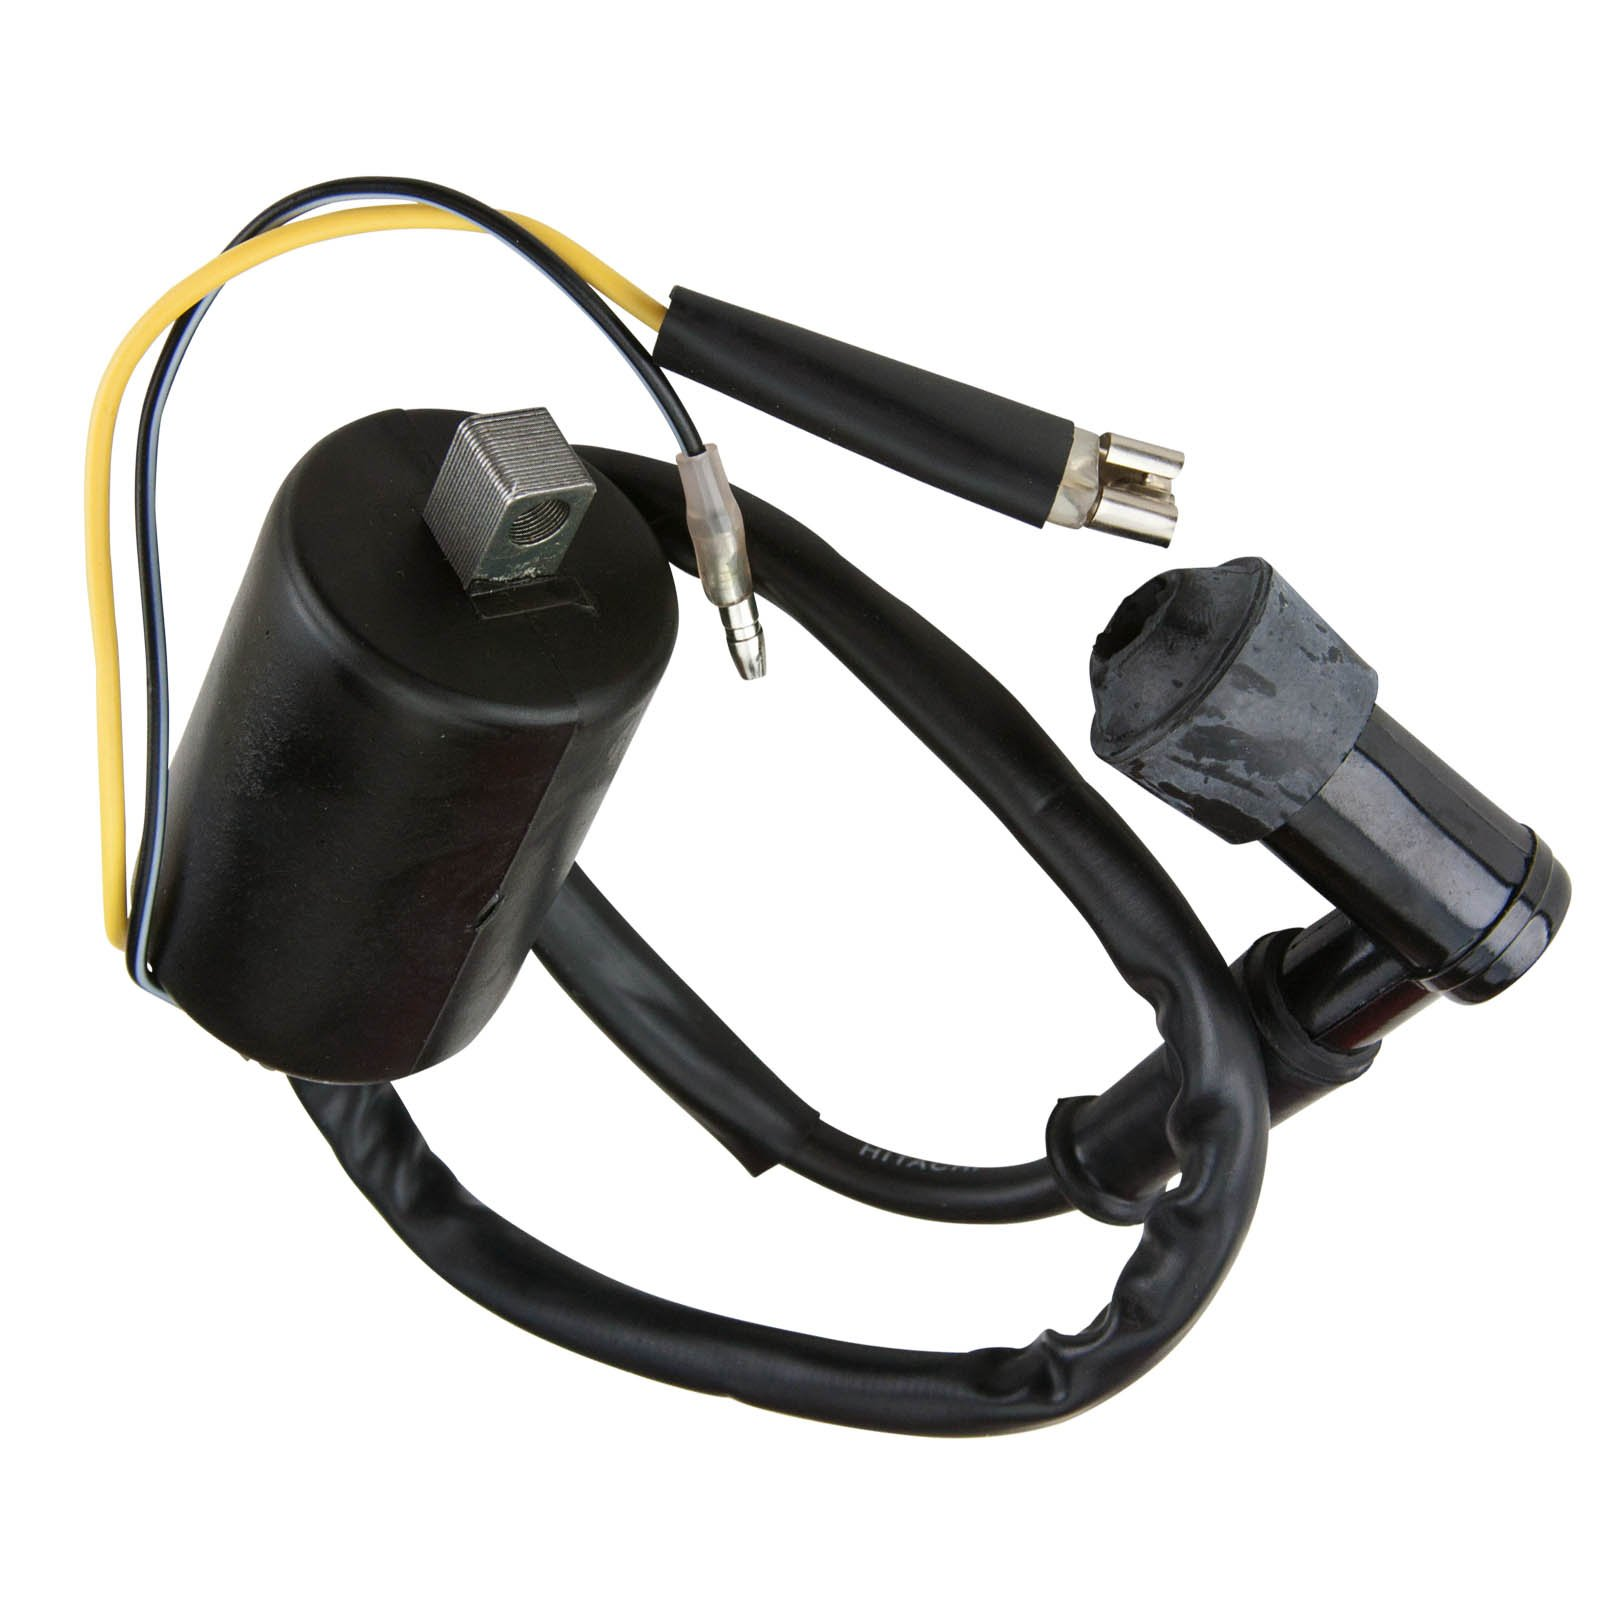 cheap cb350 parts, find cb350 parts deals on line at alibaba comget quotations · new honda ignition coil cb350 cb450 cb500 cl350 cl450 sl350 motorcycle